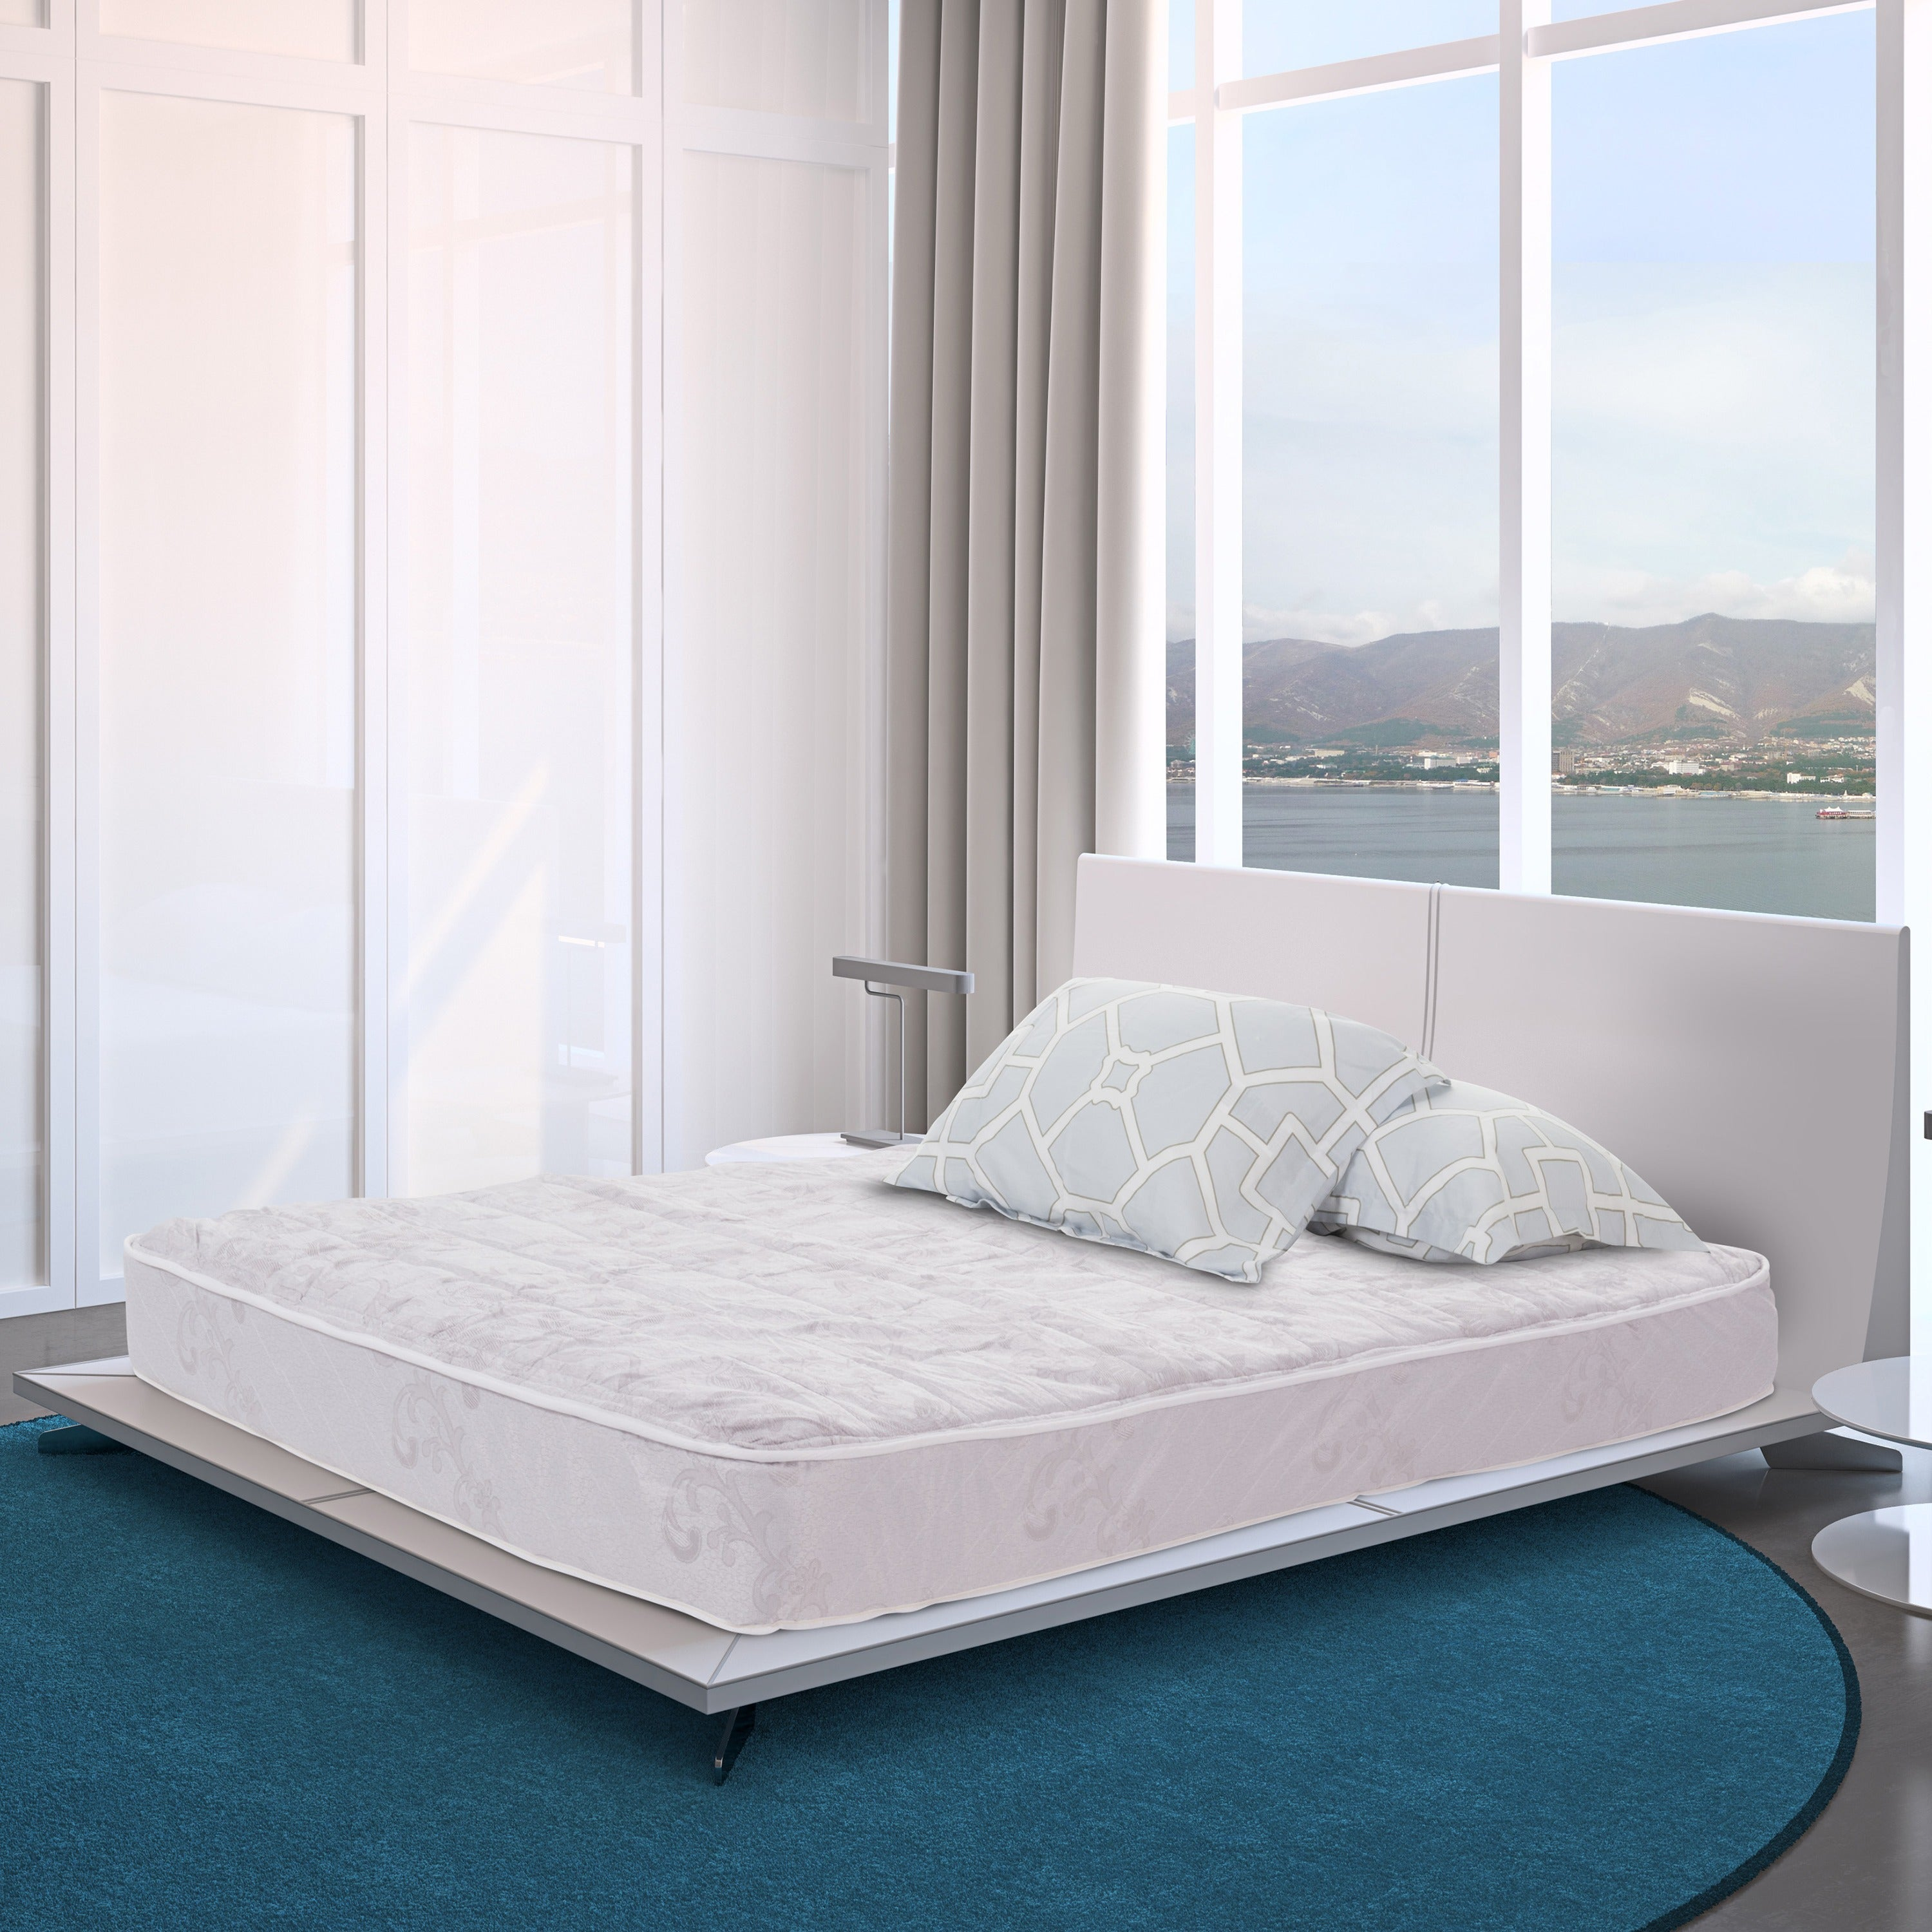 asking best will img one times number market bed estate price sleep the find you of beds only maven uncategorized prices on adjustable slept